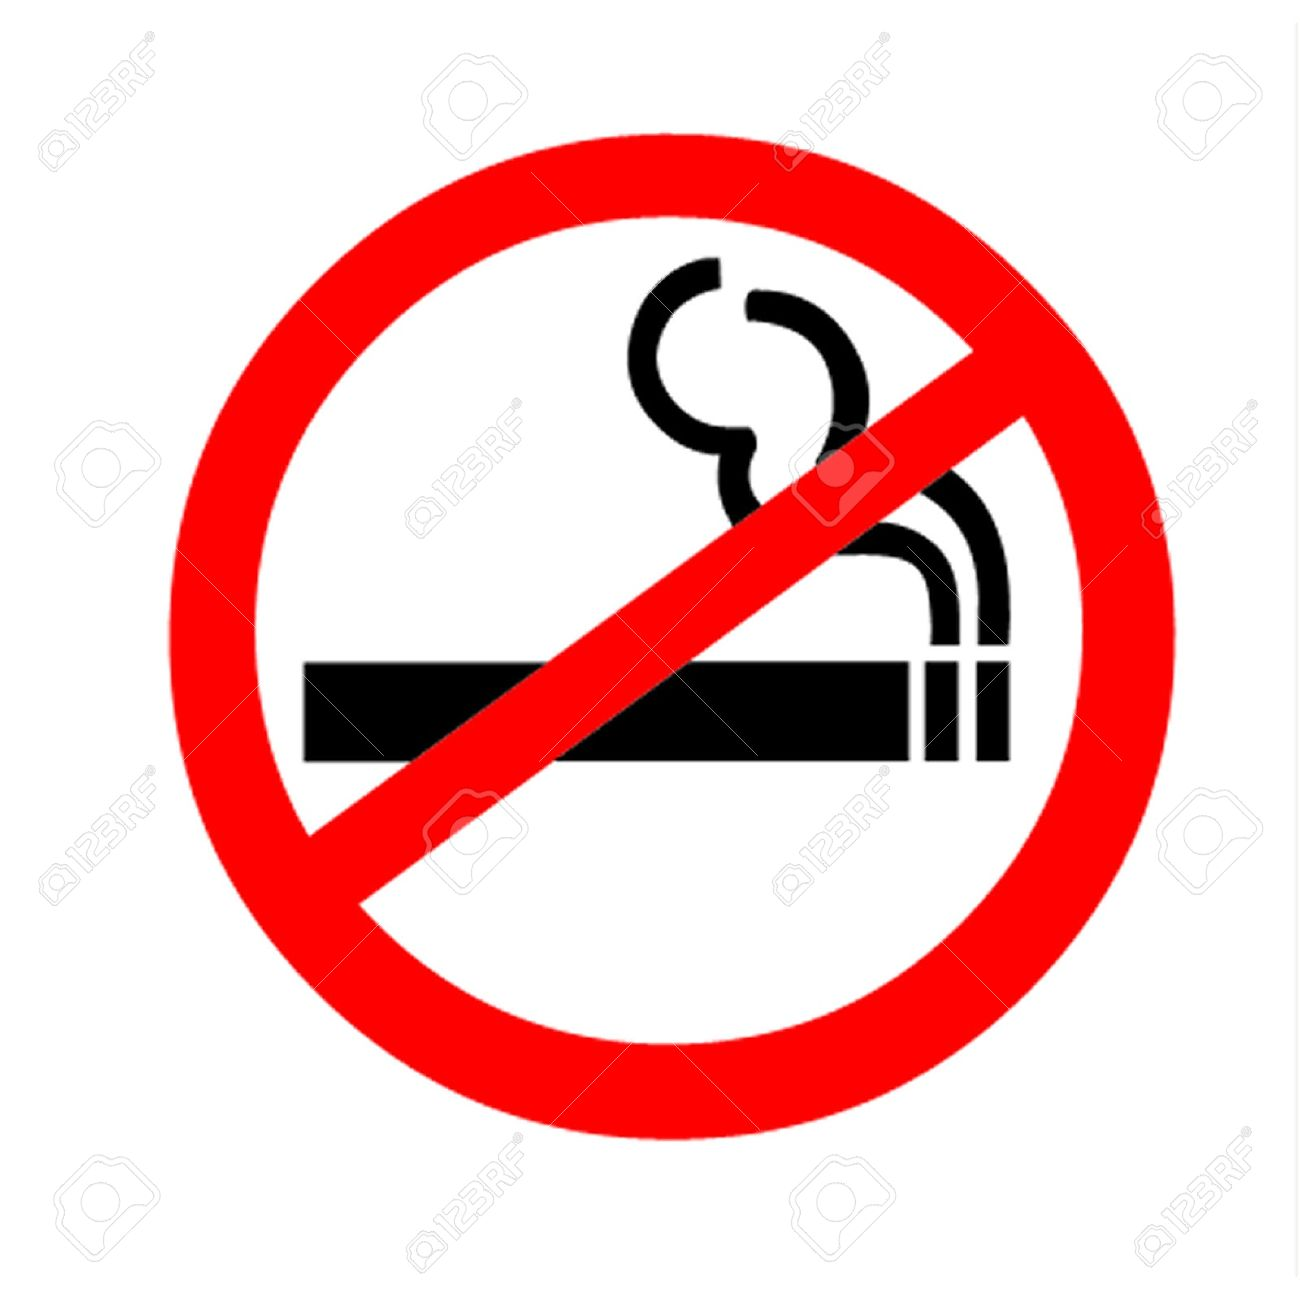 Smoking clipart #7, Download drawings